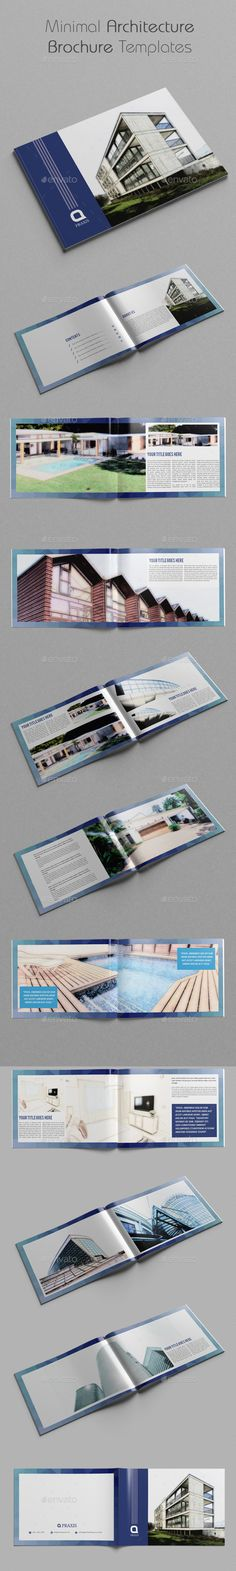 Architecture Brochure Template VerIi  Architecture Brochure